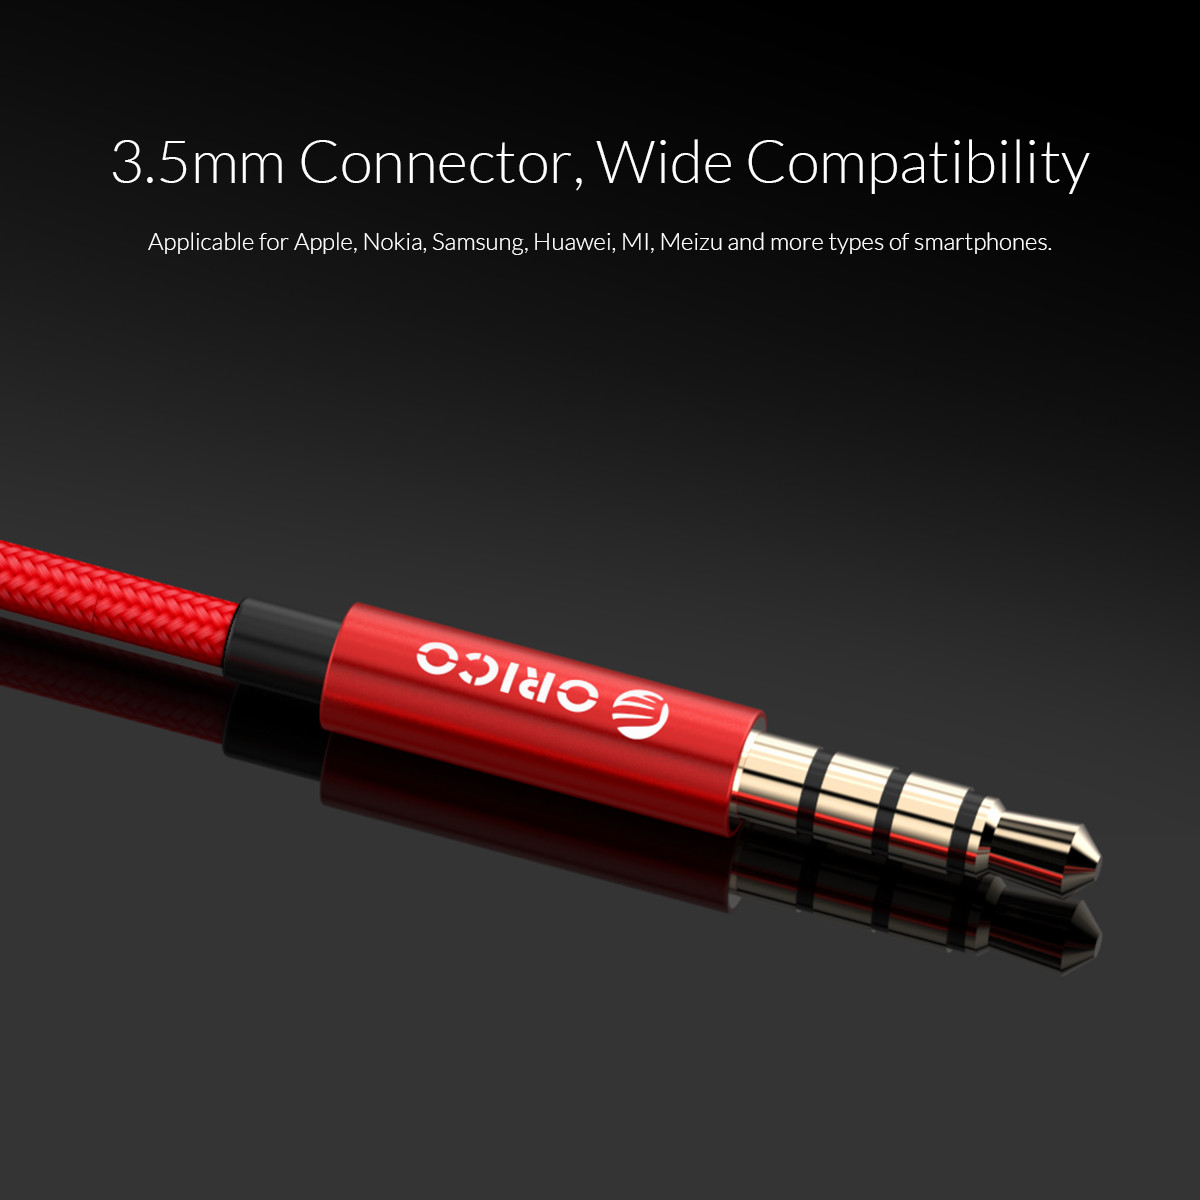 3.5 mm connector wide compatibility